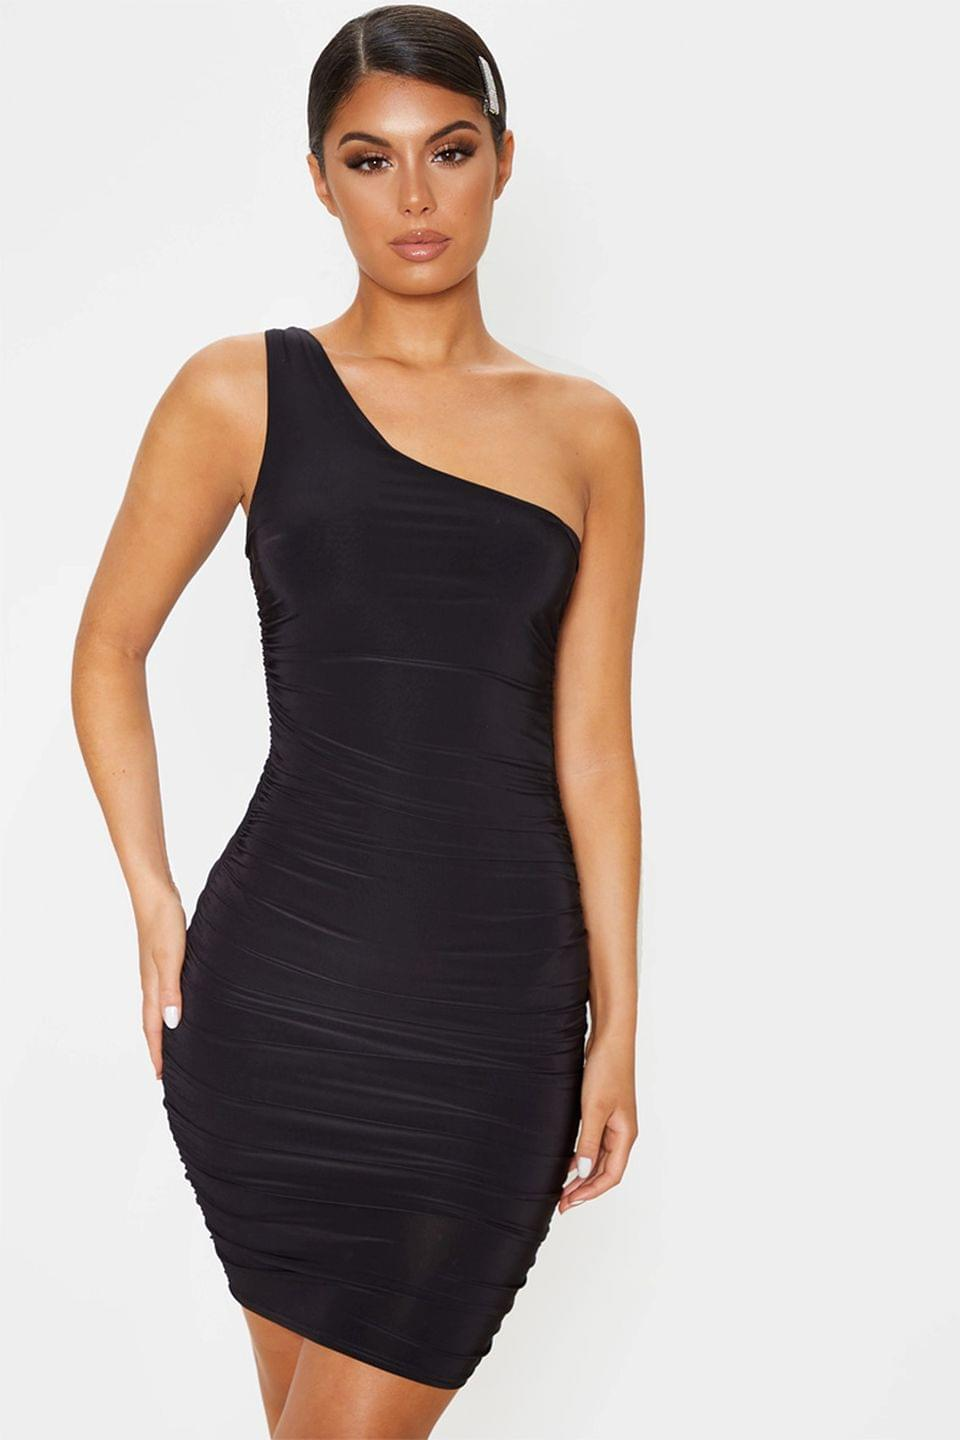 Women's PrettyLittleThing Slinky One Shoulder Ruched Bodycon Dress